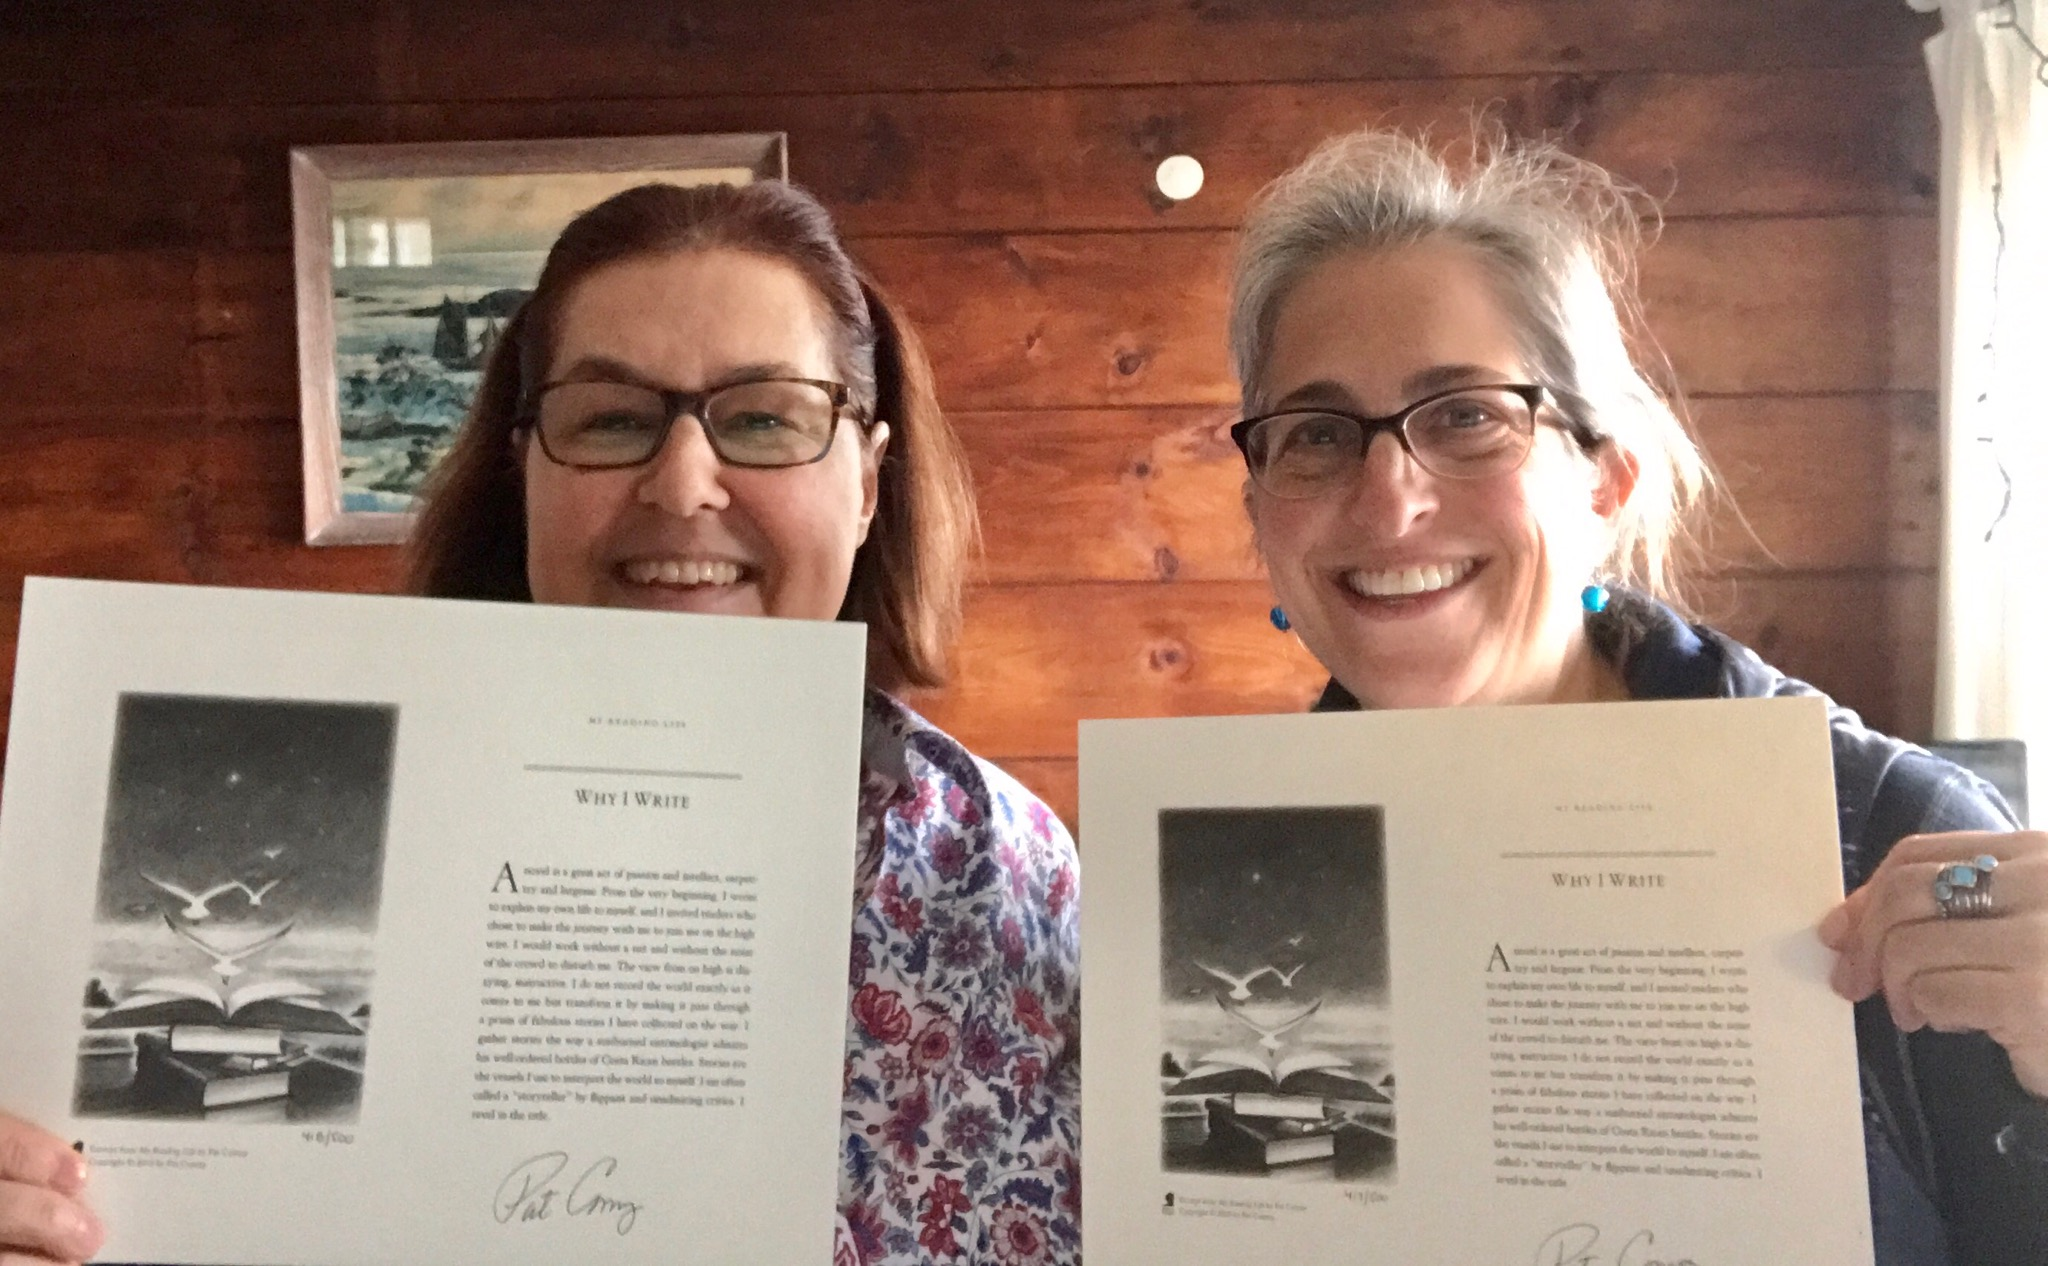 We received these wonderful prints signed by Pat Conroy from our friend, Ann Kingman.